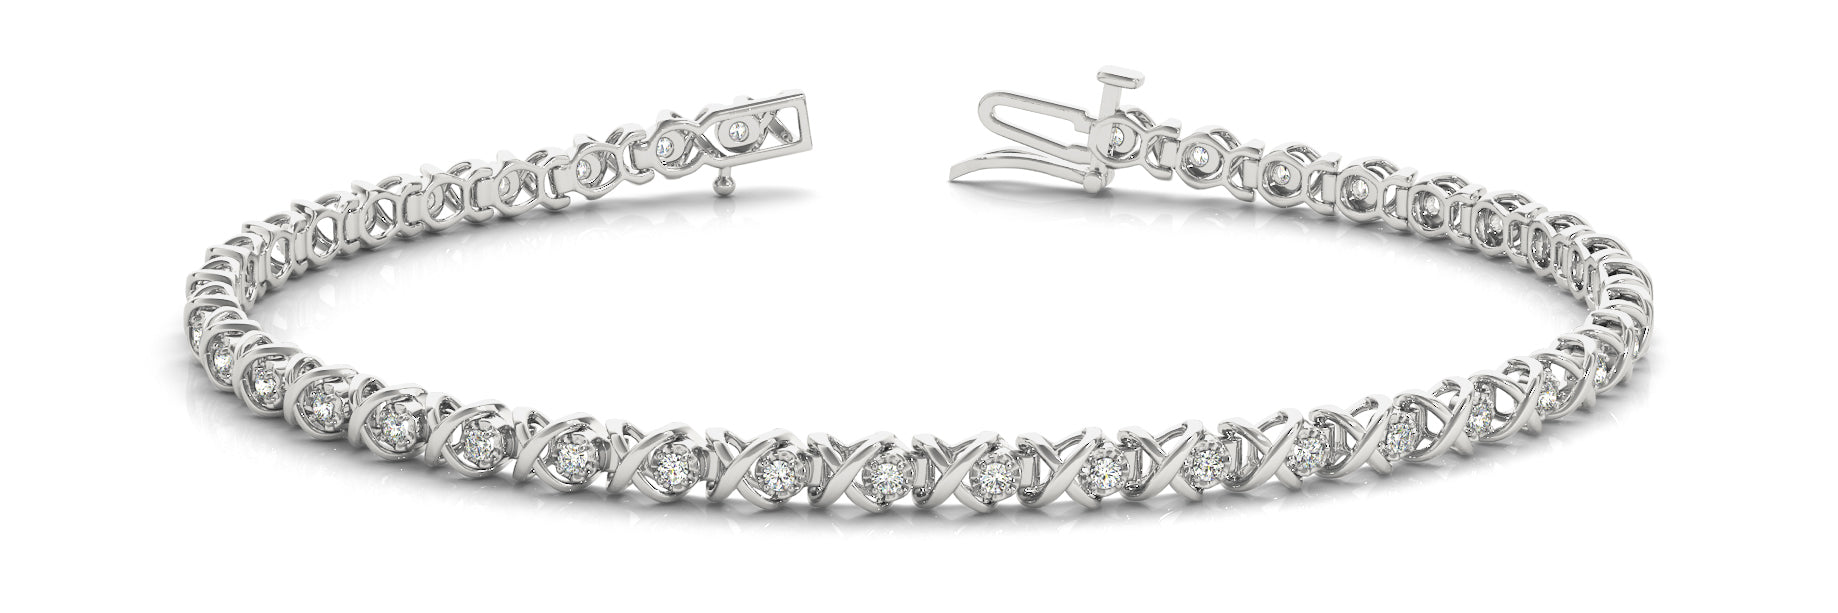 Fancy Diamond Bracelet Ladies 0.43ct tw - 14kt White Gold